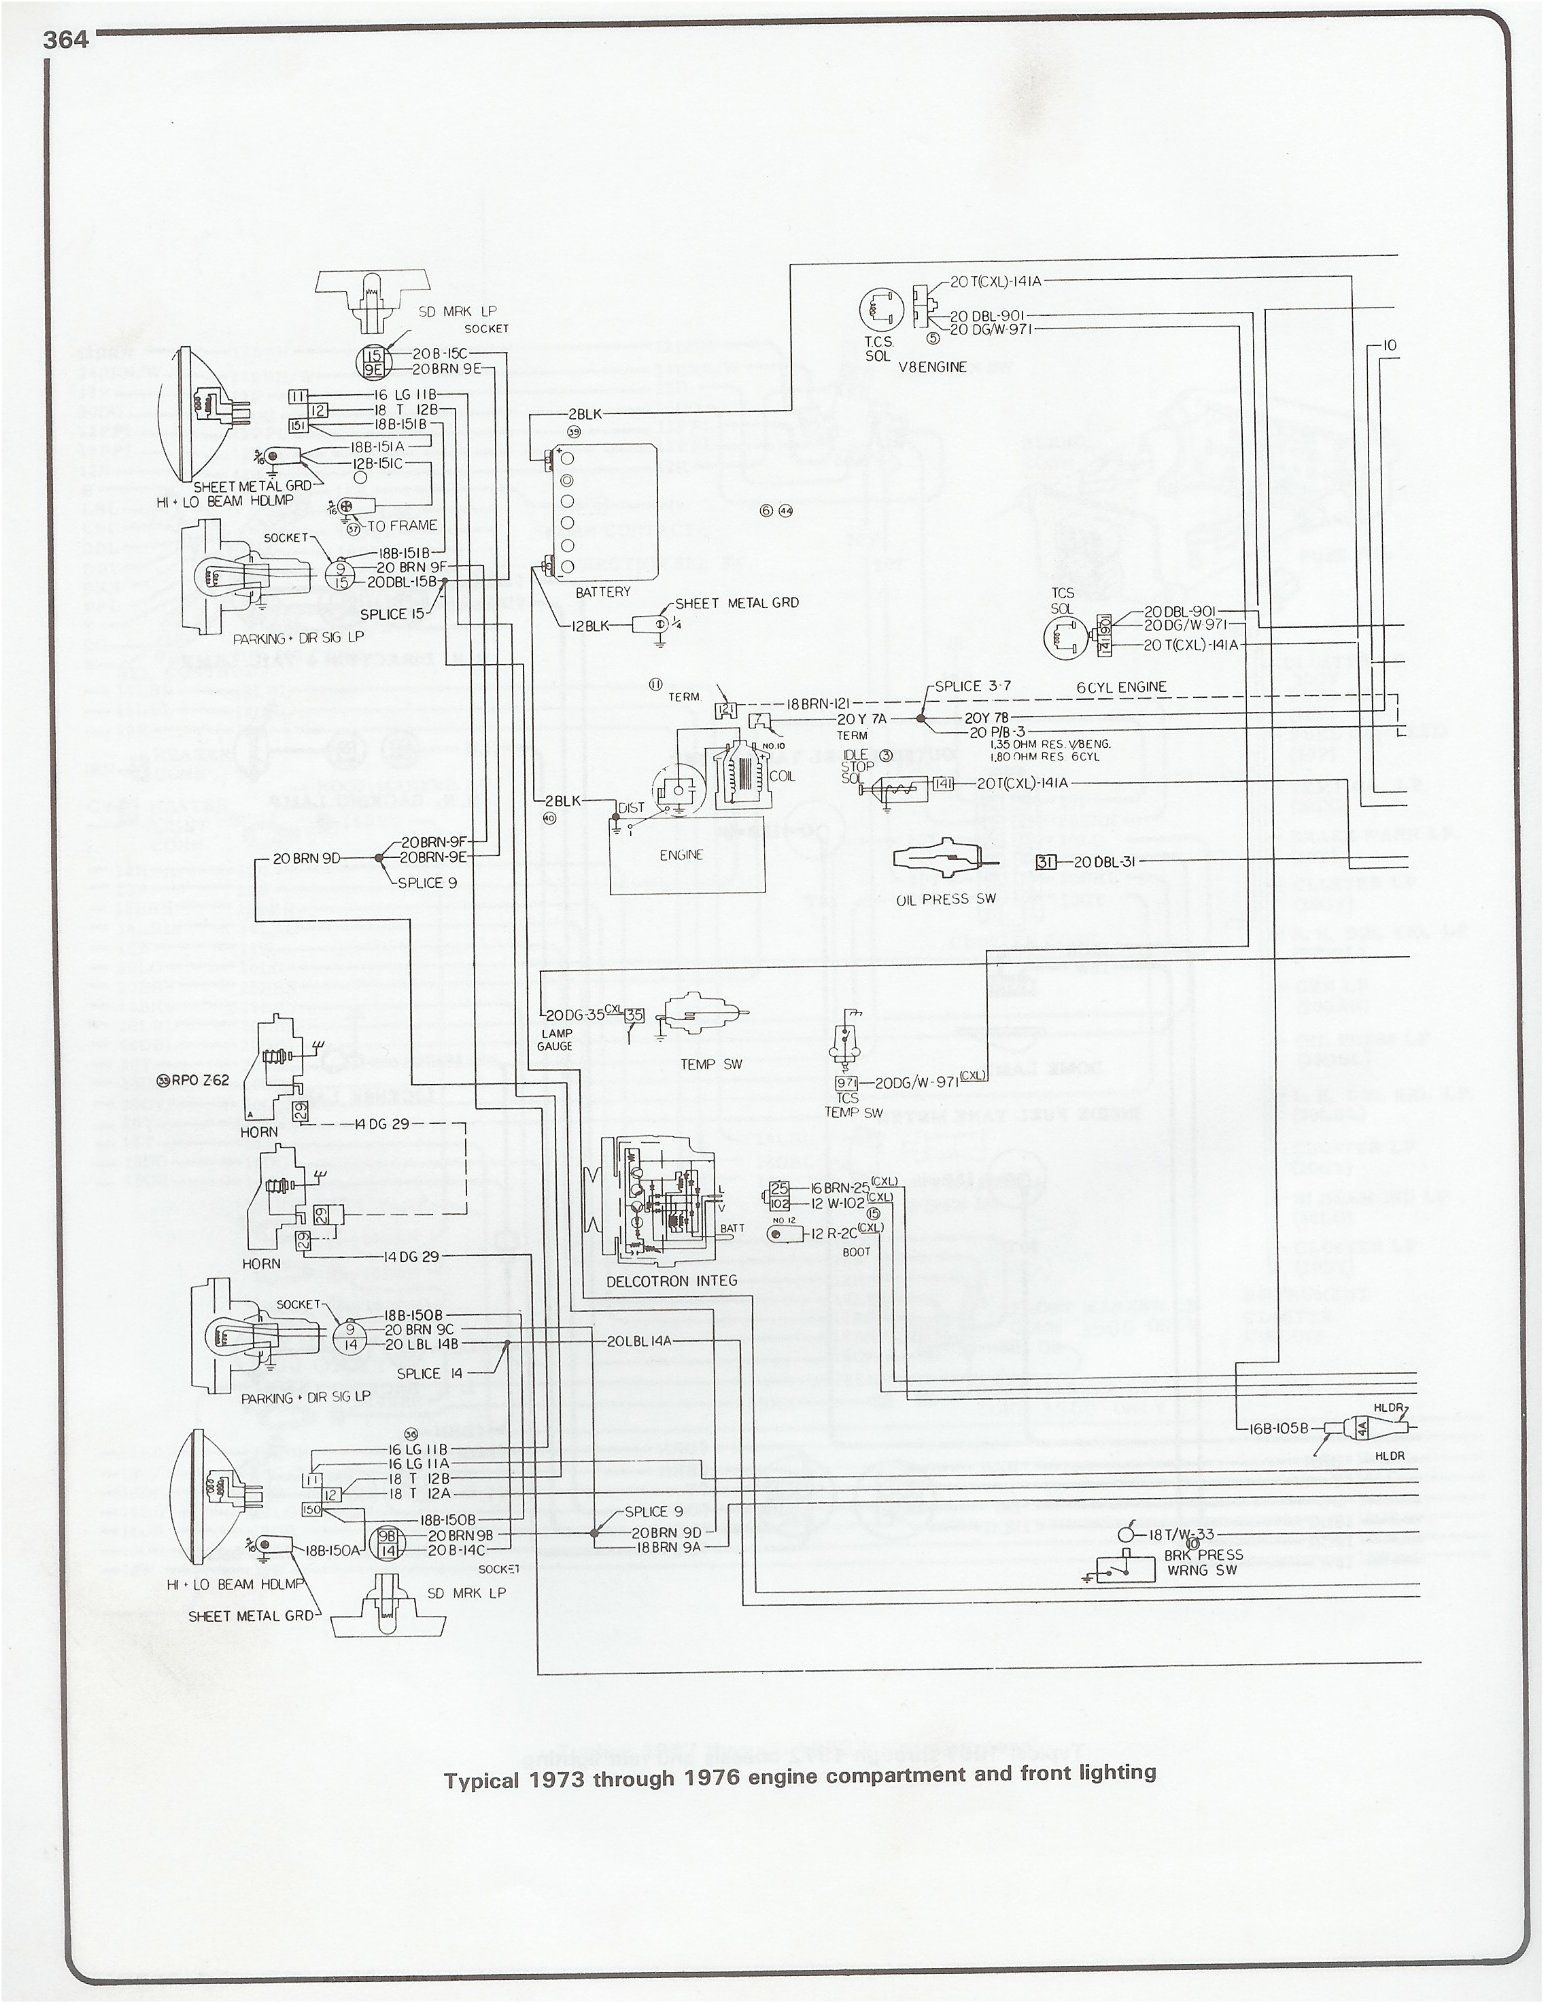 wiring diagram 1973 - 1976 chevy pickup #chevy #wiring # ... 1976 jeep wiring diagram